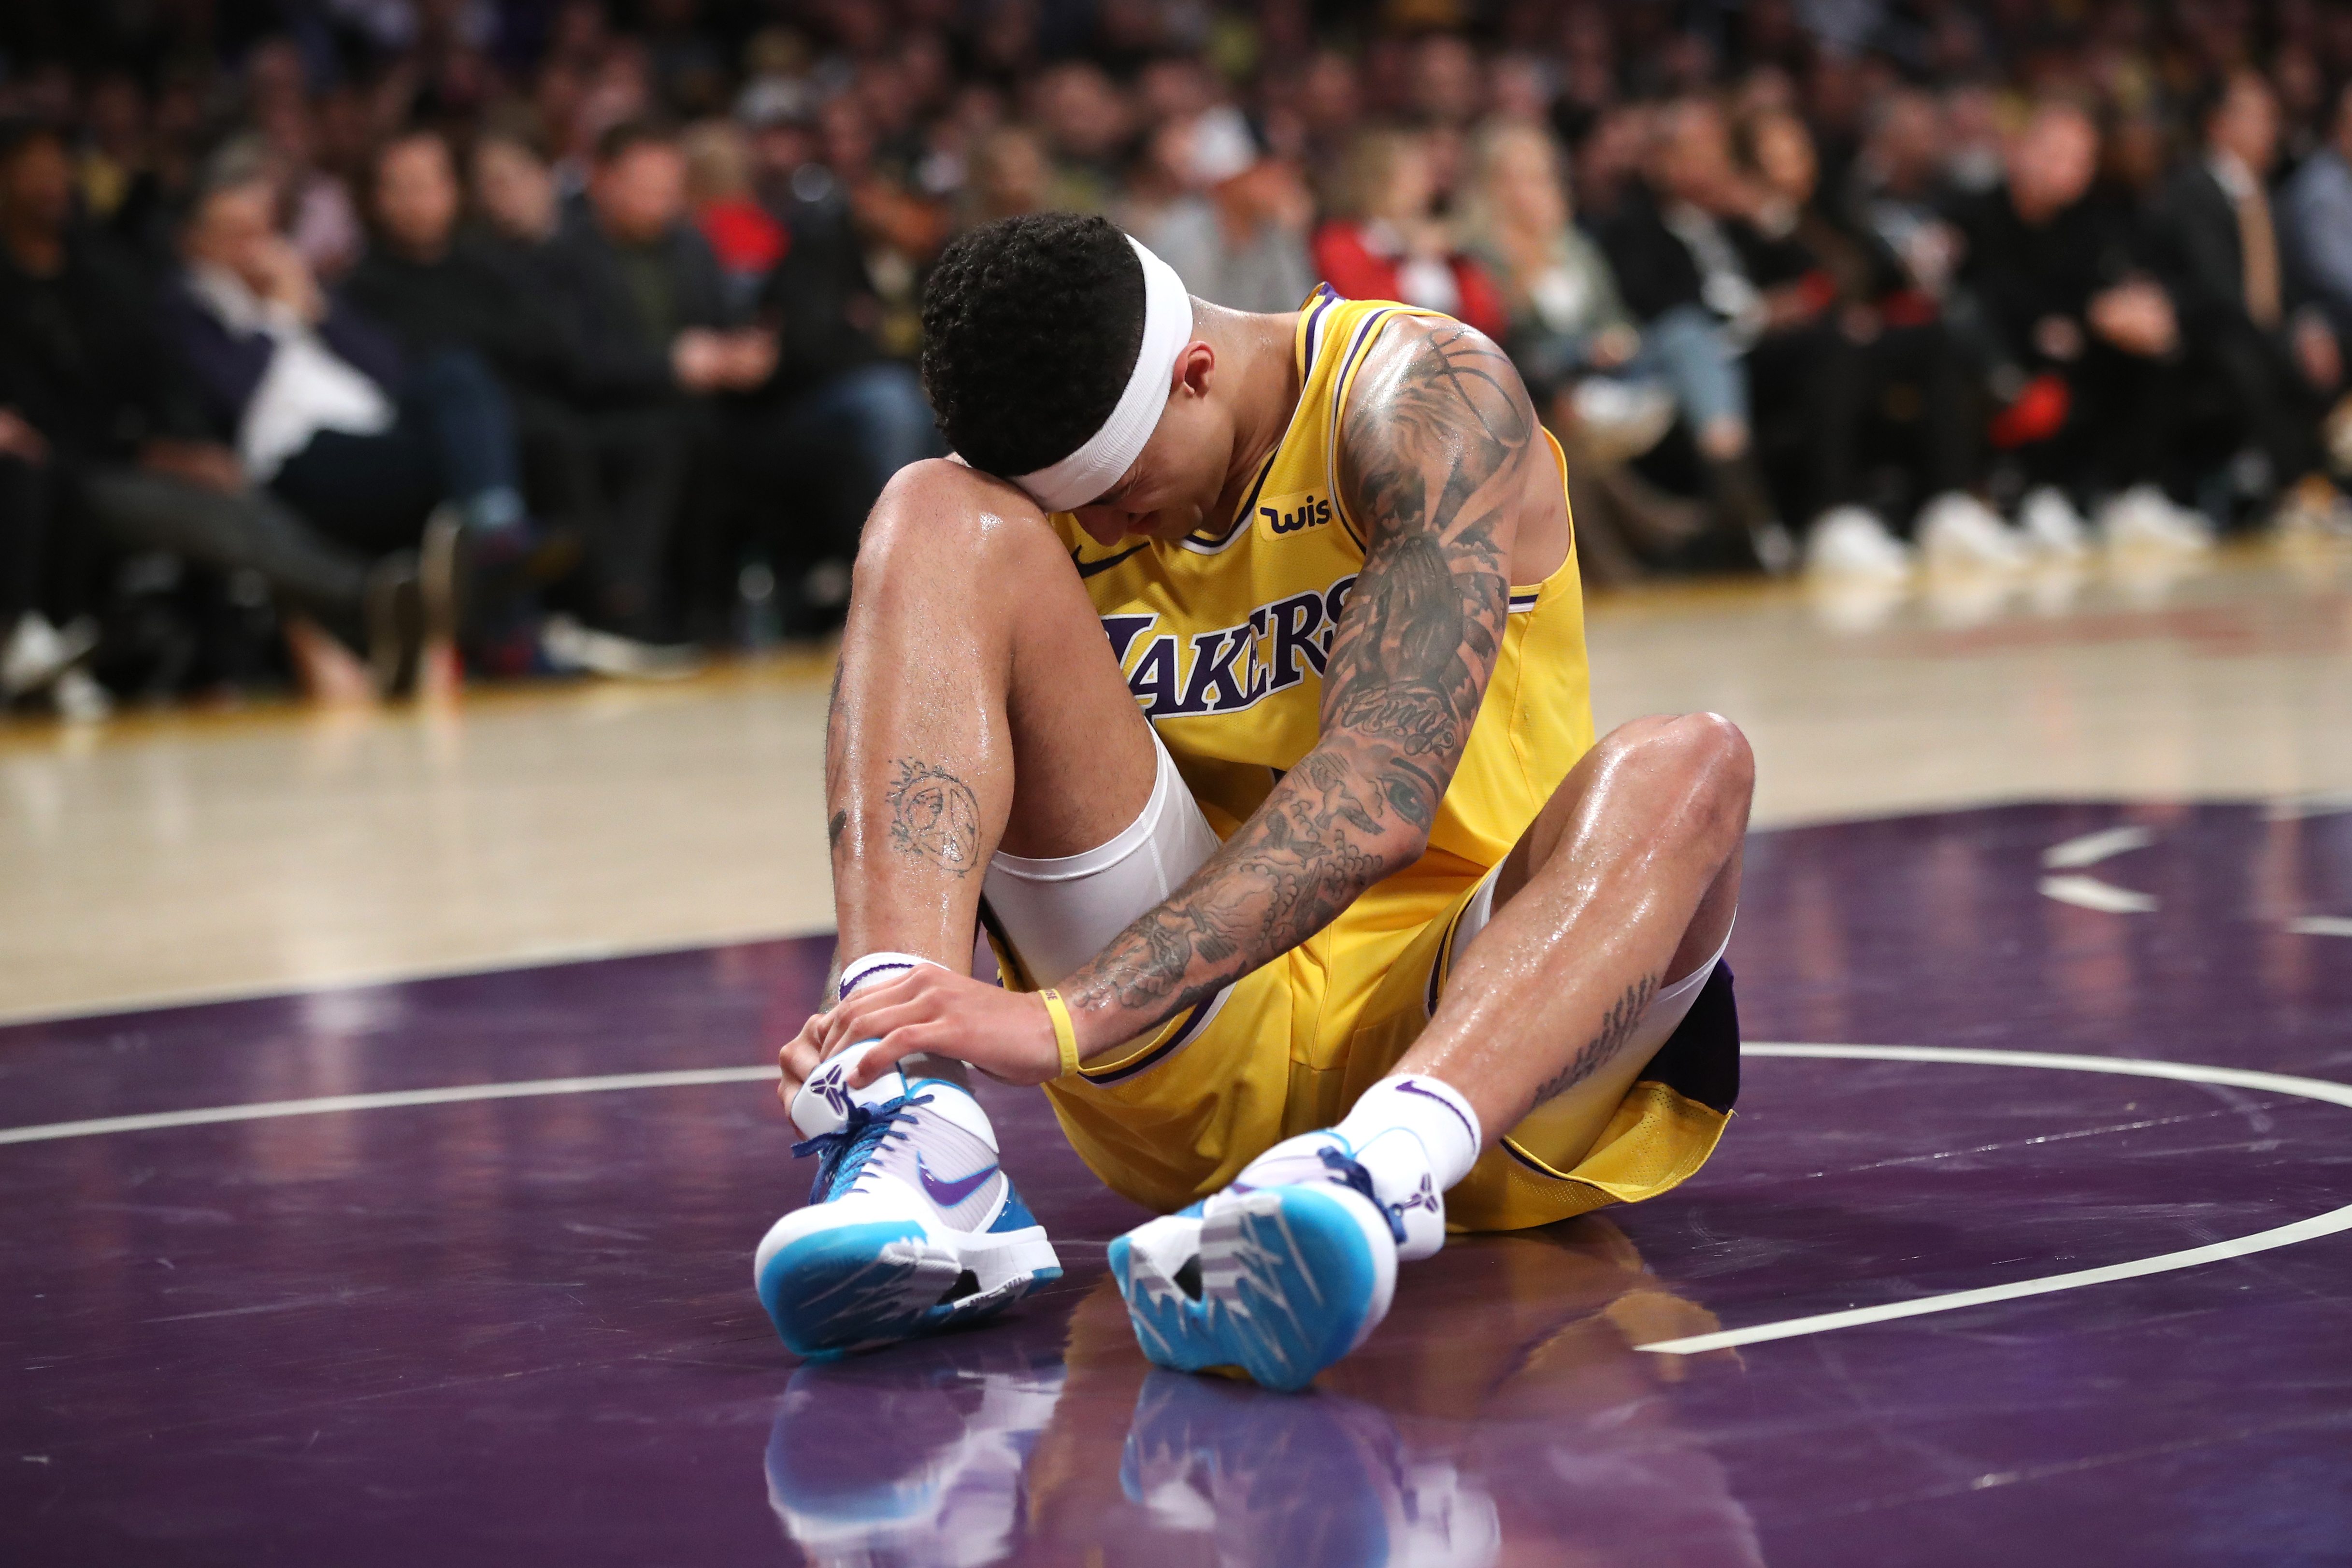 e8f9c0b4bbb6 Lakers Injury News  Kyle Kuzma ruled out for Wednesday vs. Nuggets ...